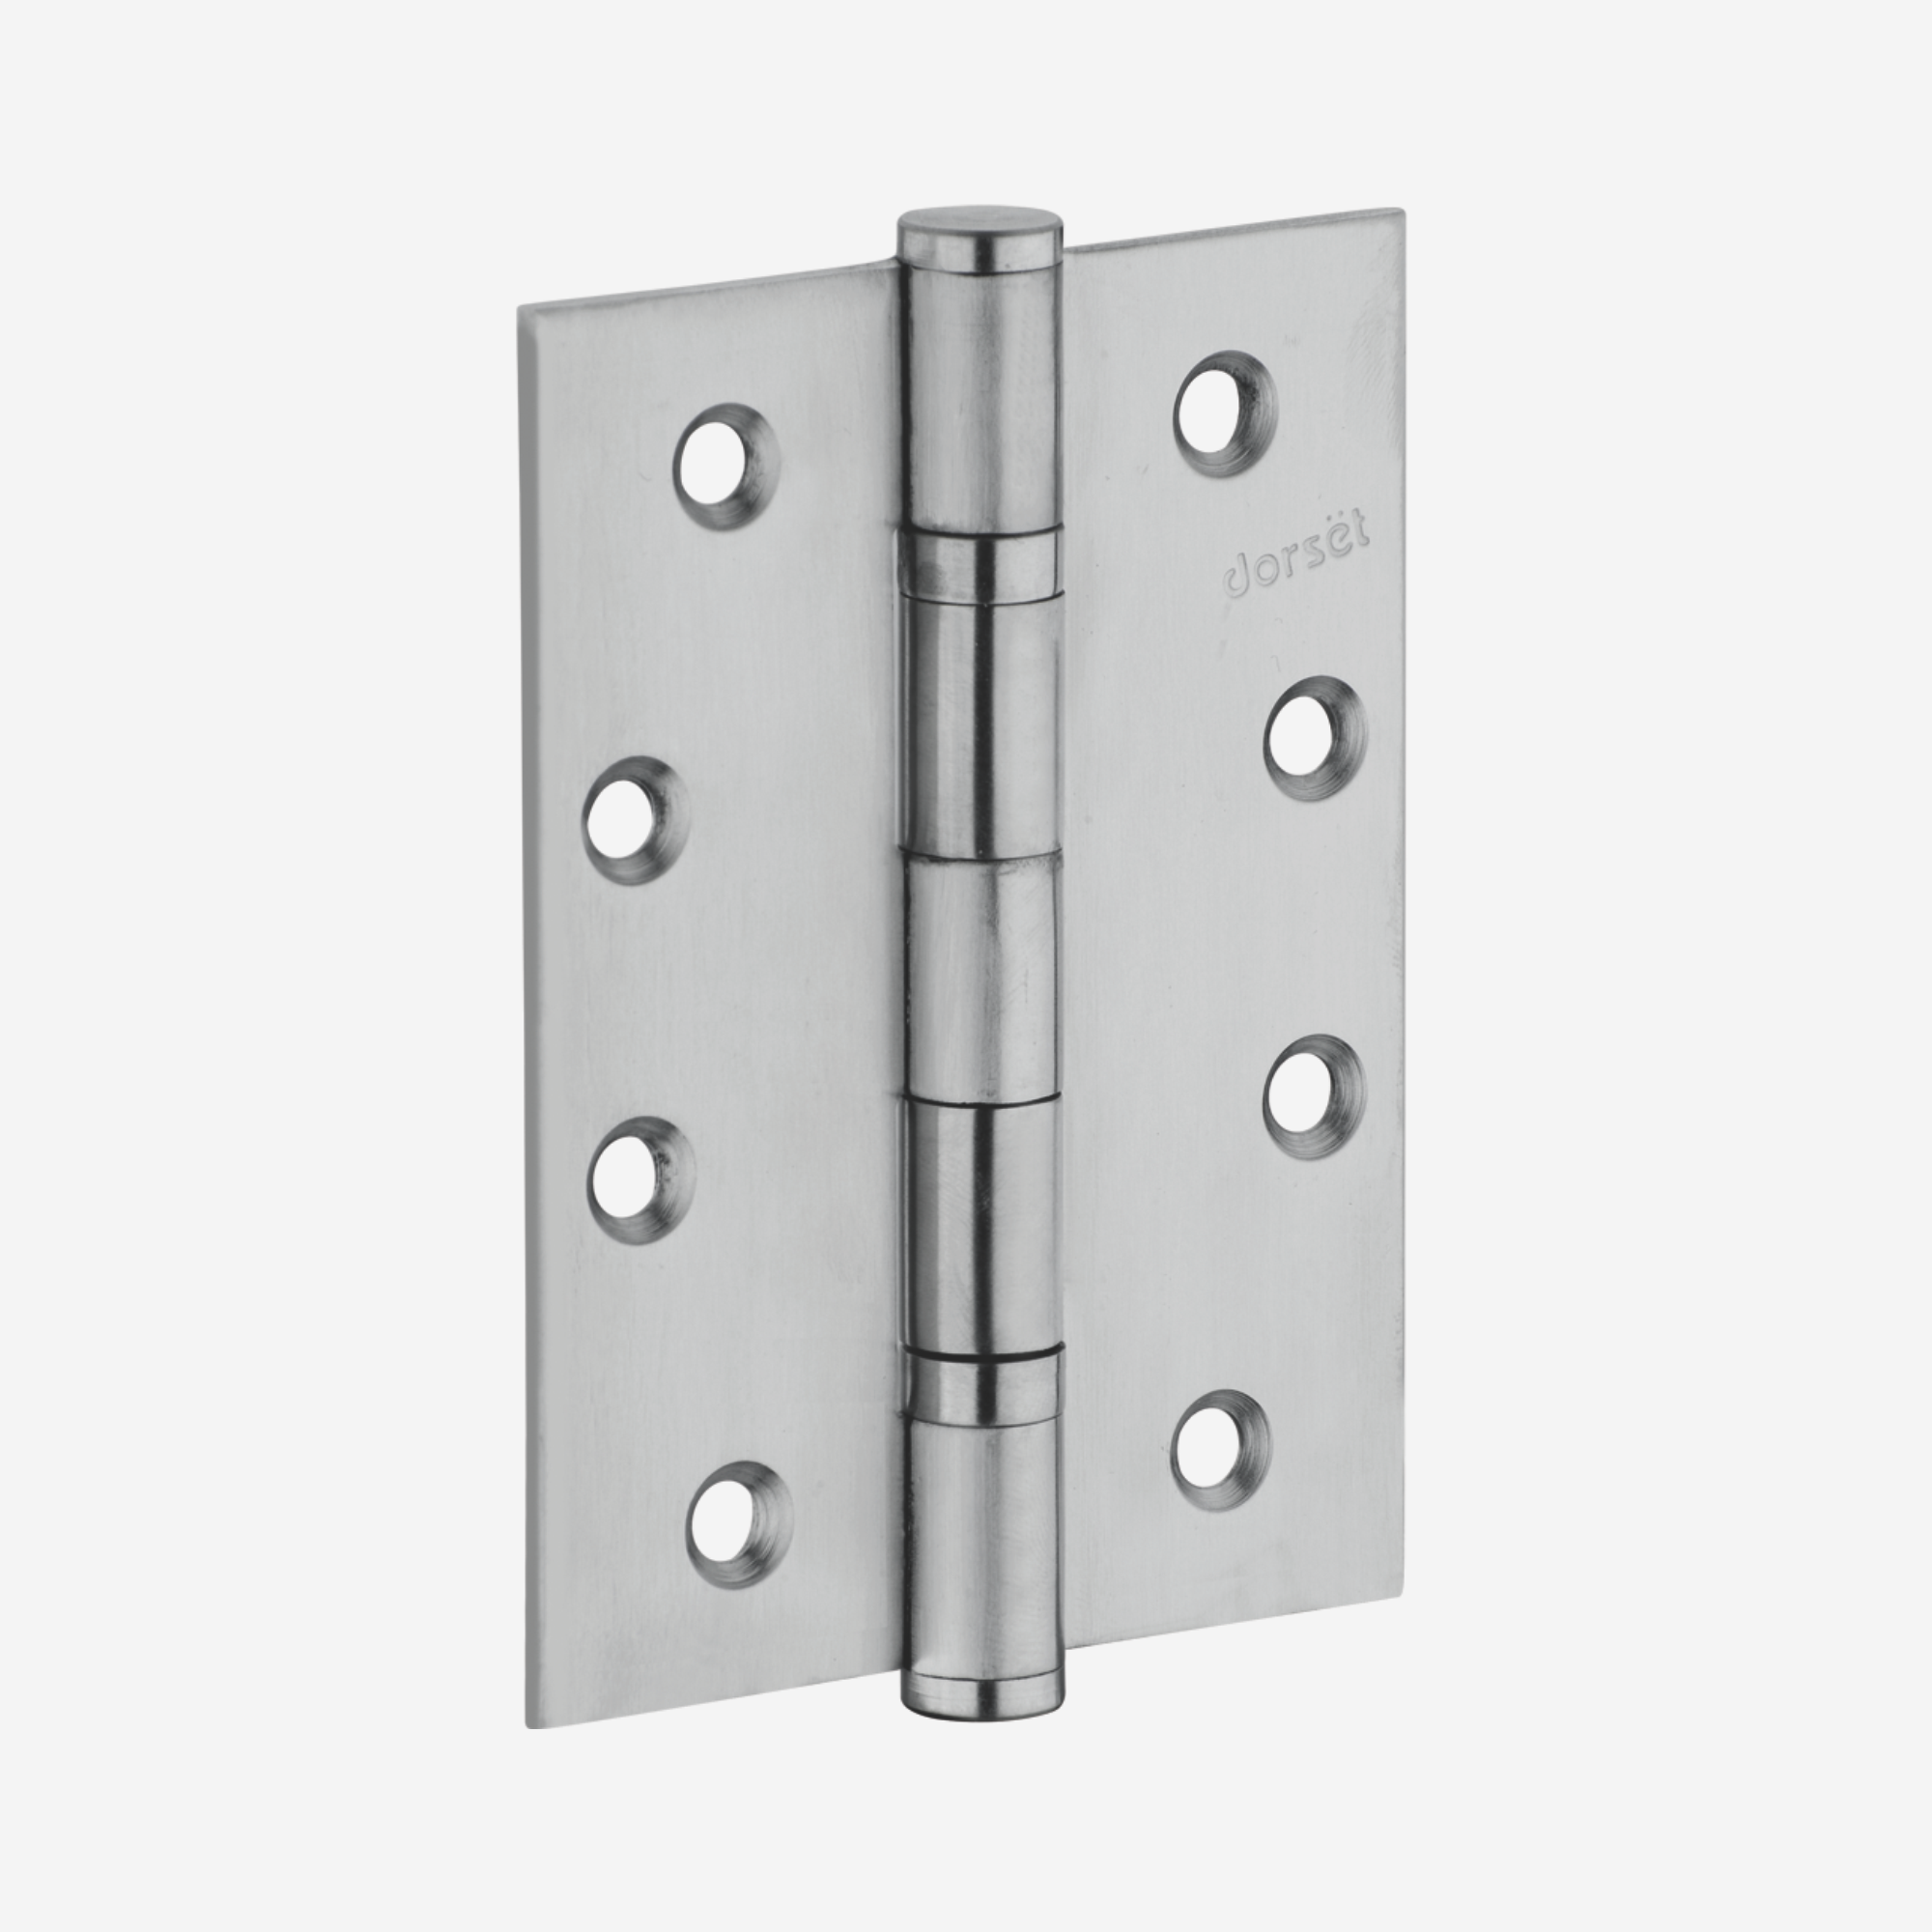 Dorset Silver Satin Two Ball Bearing Hinges with Screw - HG 1152 SS